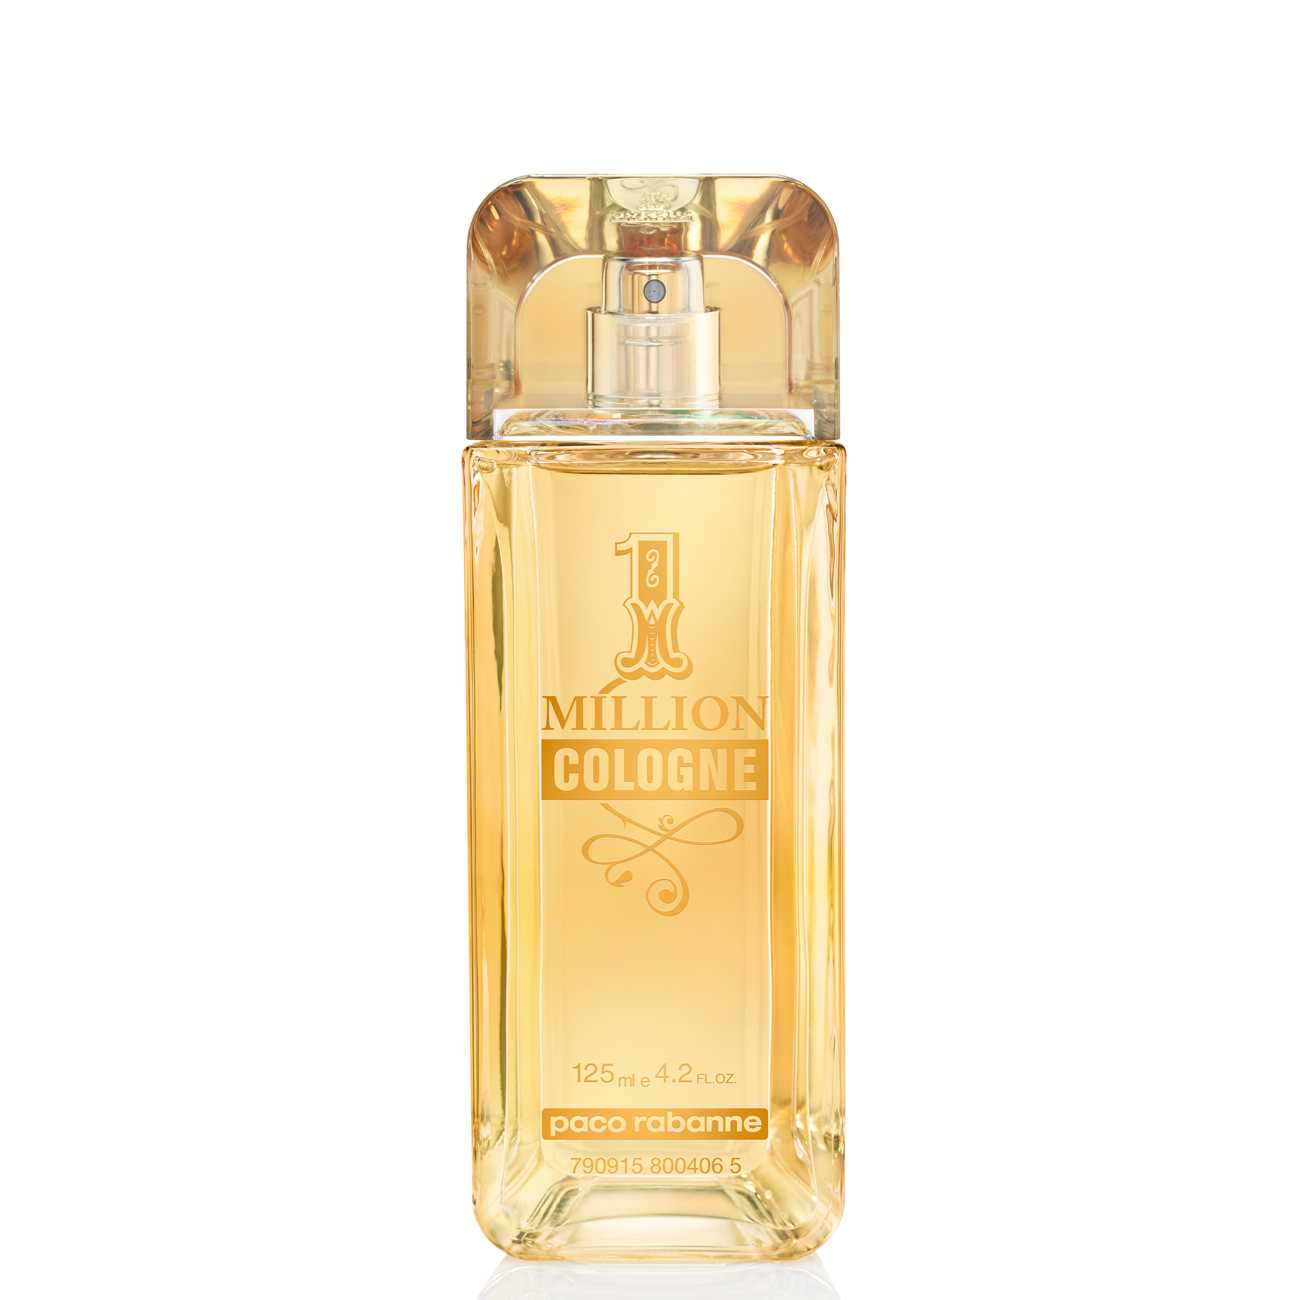 1 MILLION COLOGNE 125ml imagine produs